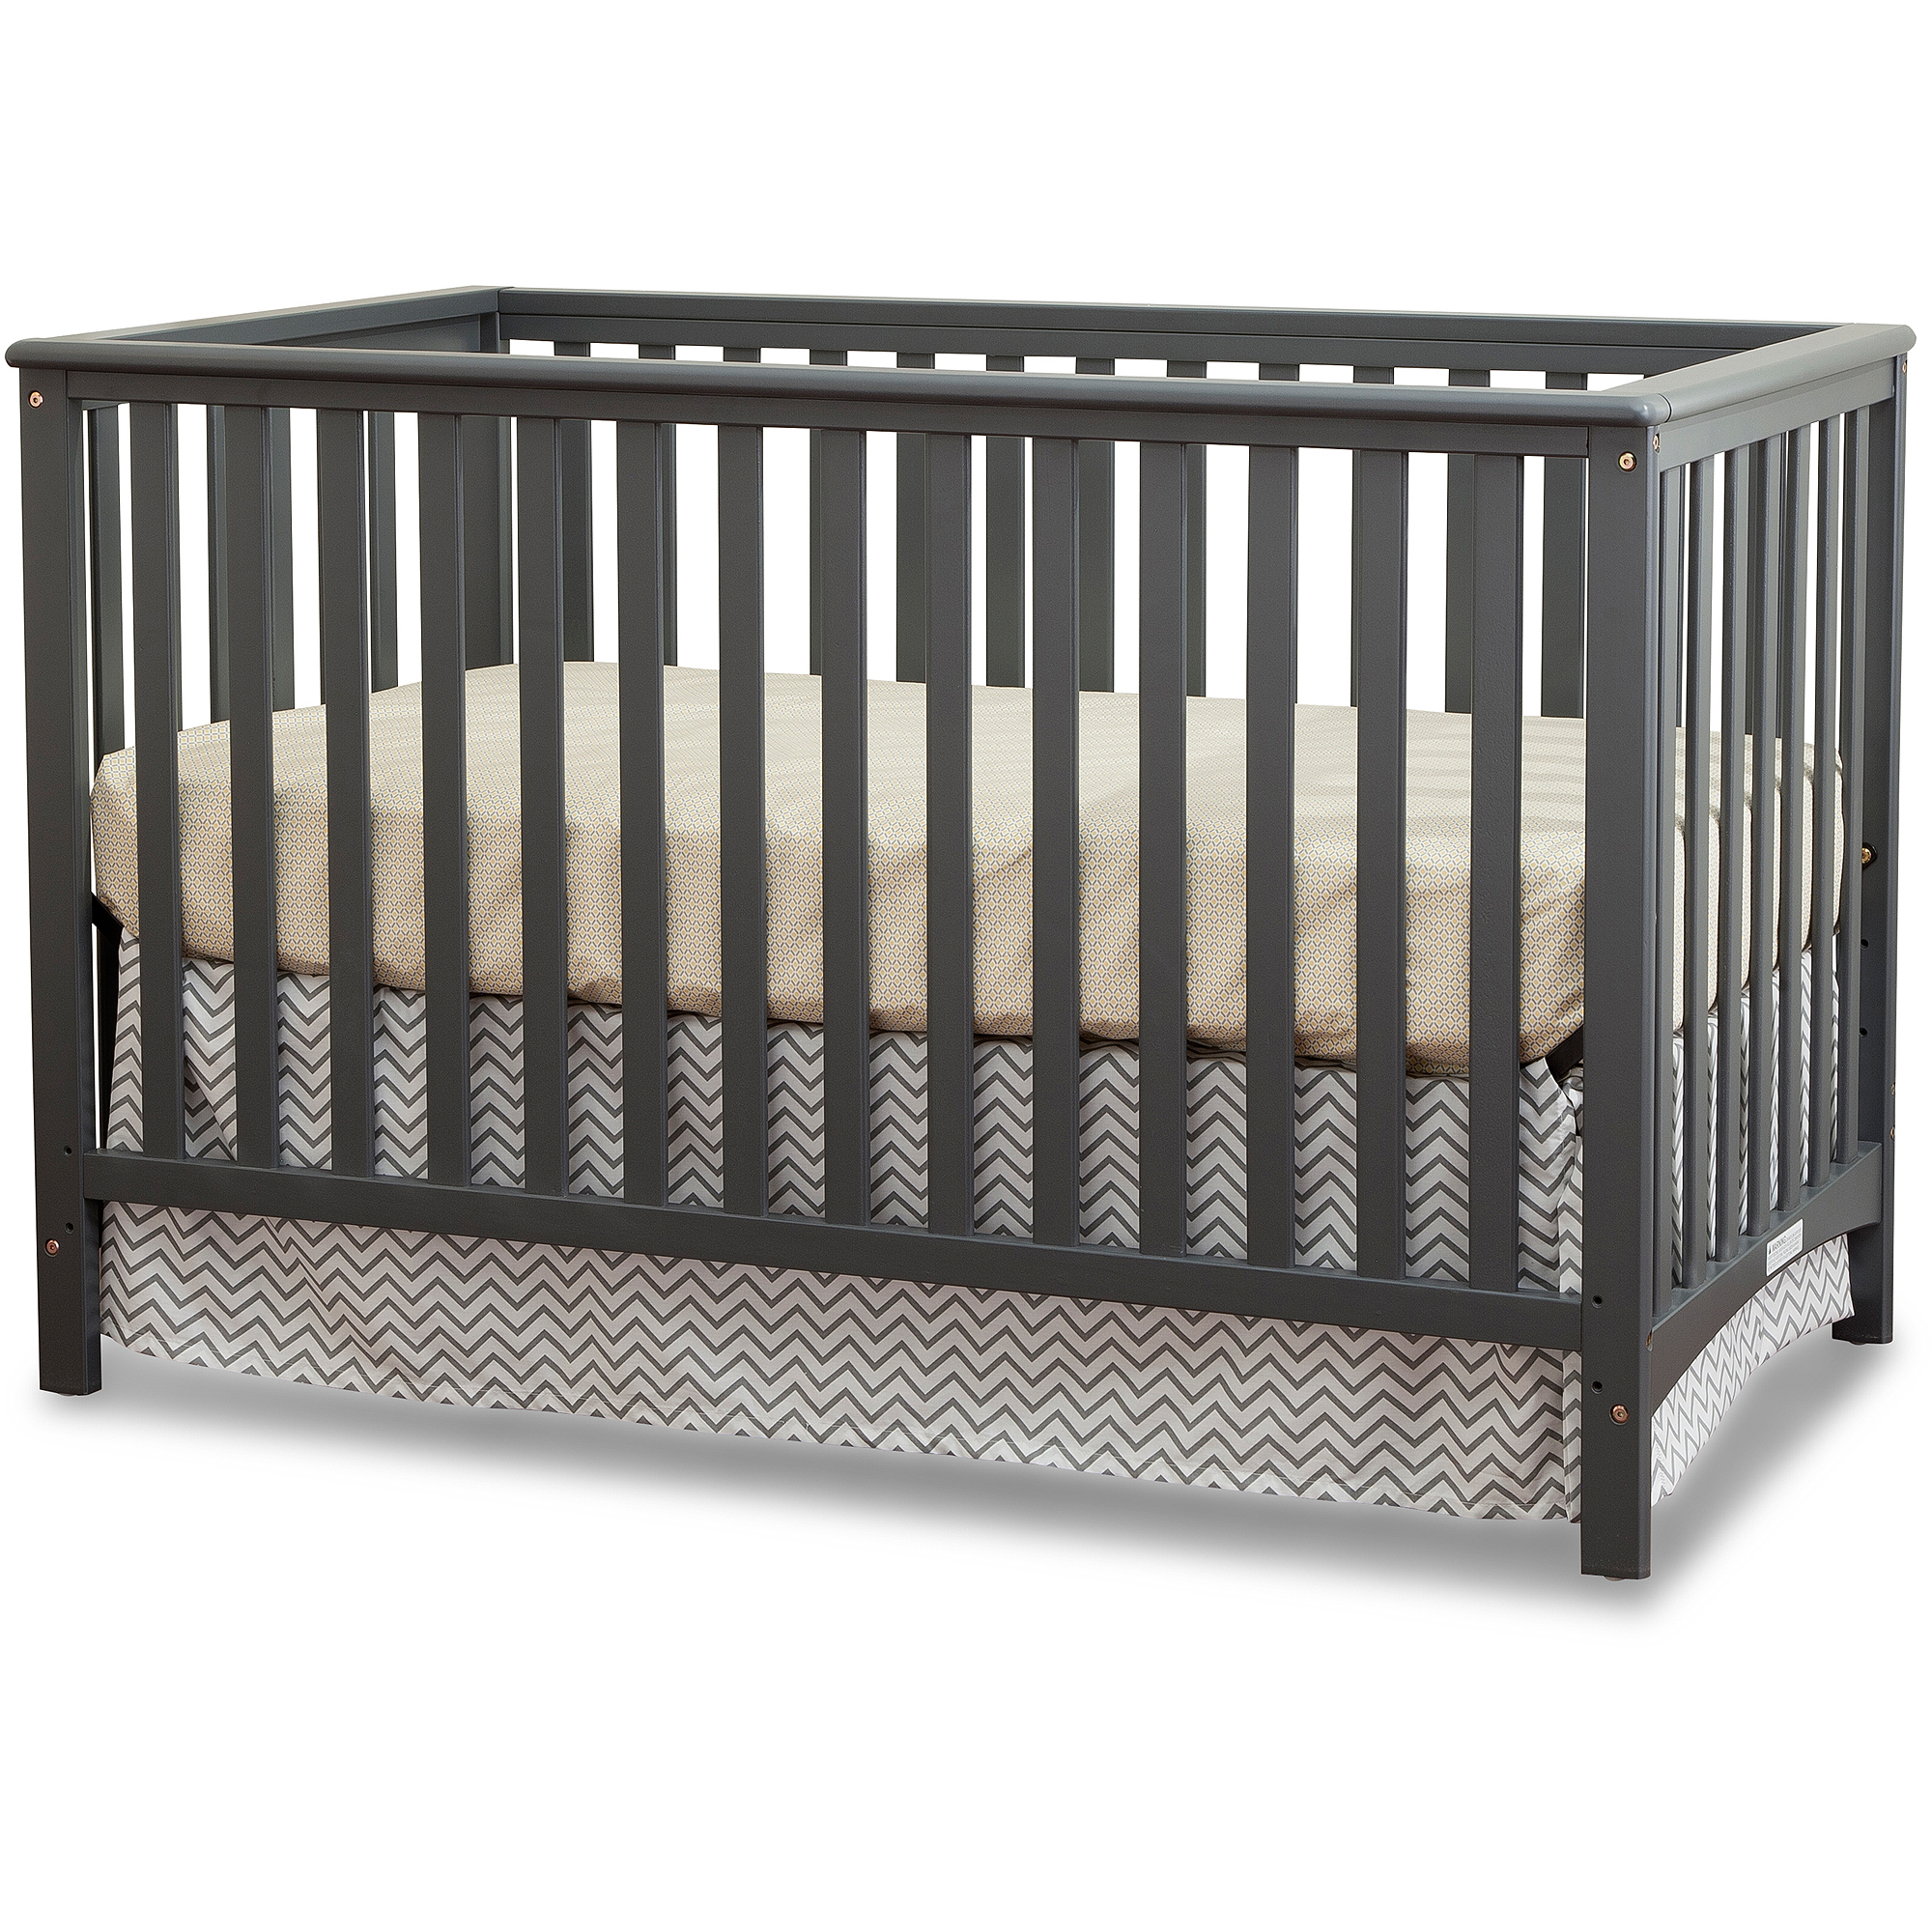 Storkcraft Hillcrest Fixed-Side Convertible Crib, Gray